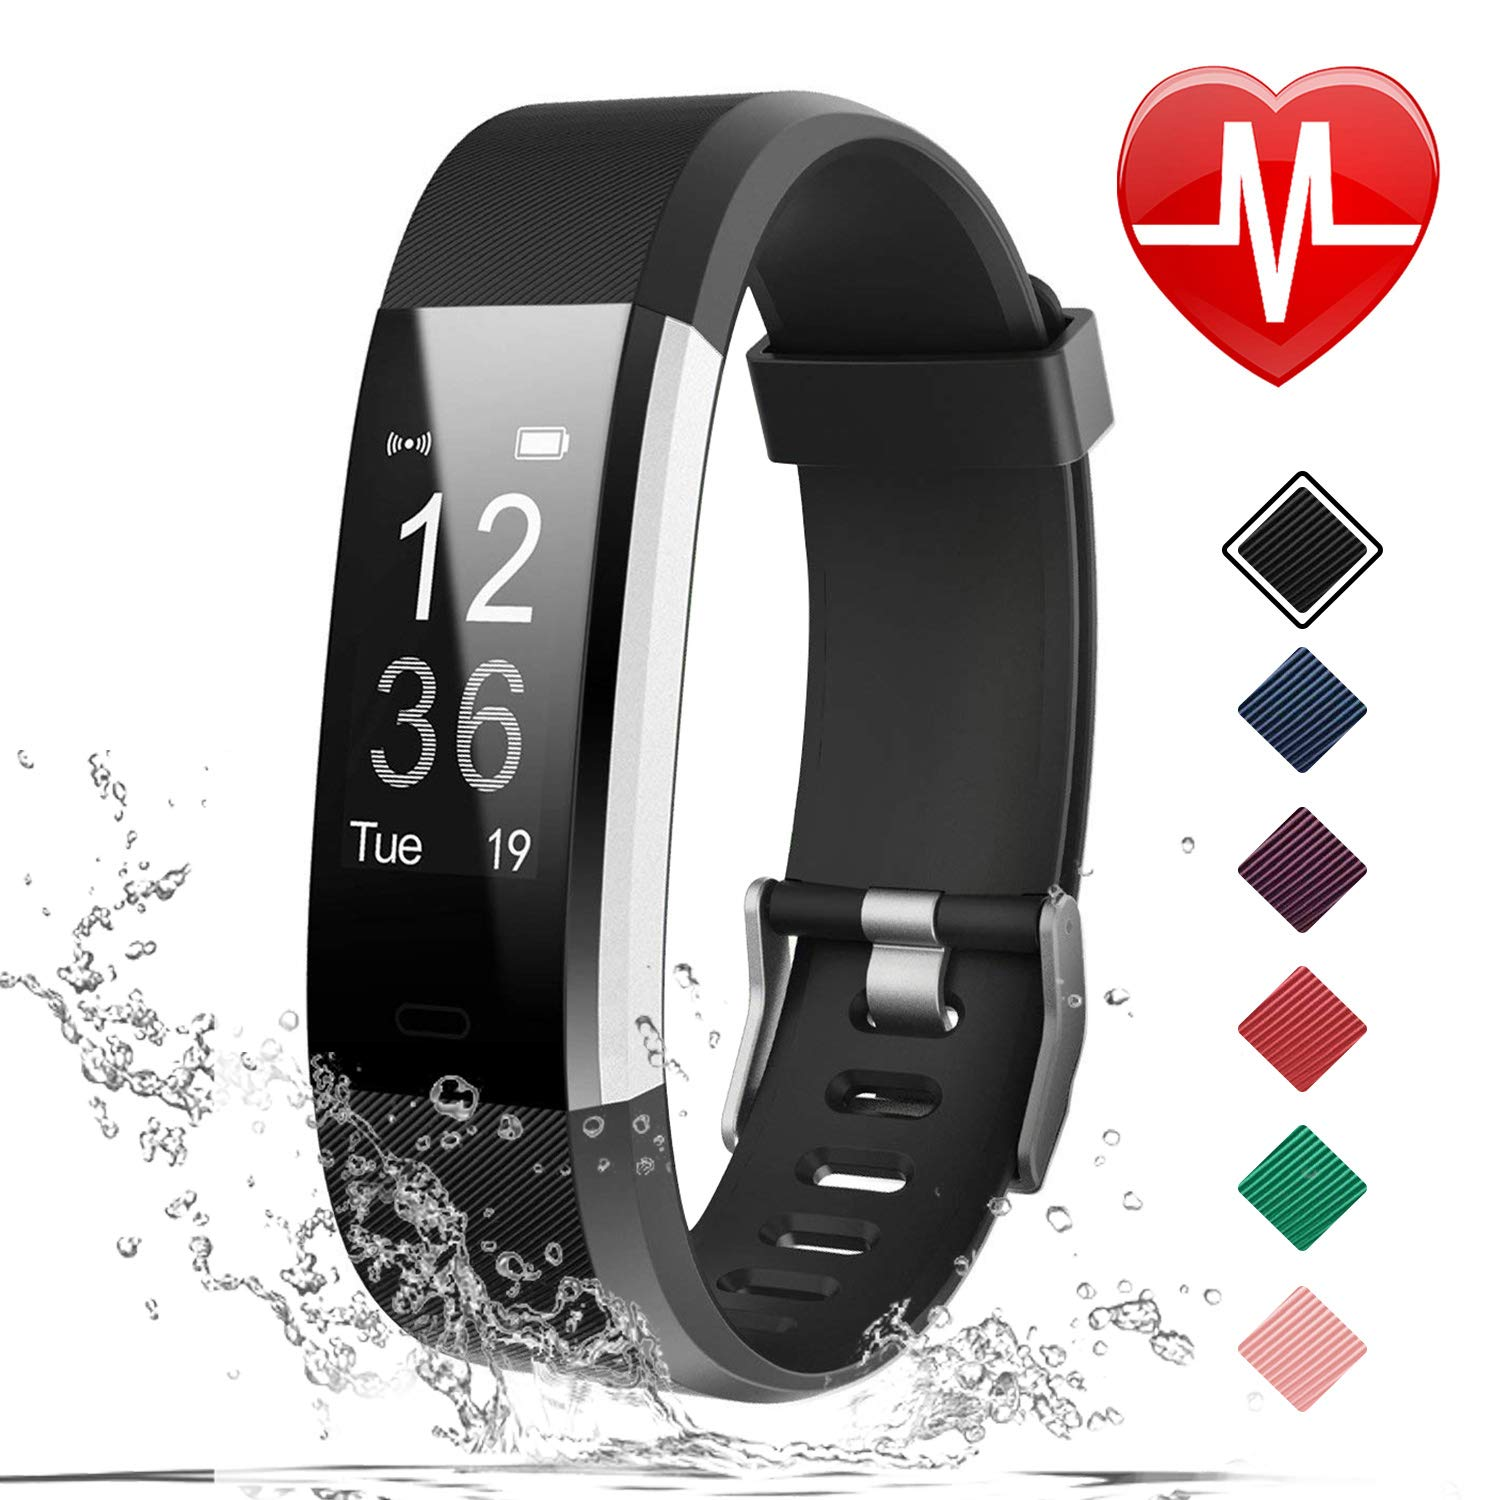 LETSCOM Fitness Tracker HR, Activity Tracker Watch with Heart Rate Monitor, IP67 Waterproof Smart Bracelet with Step Counter, Calorie Counter, Pedometer Watch for Women and Men, Kids